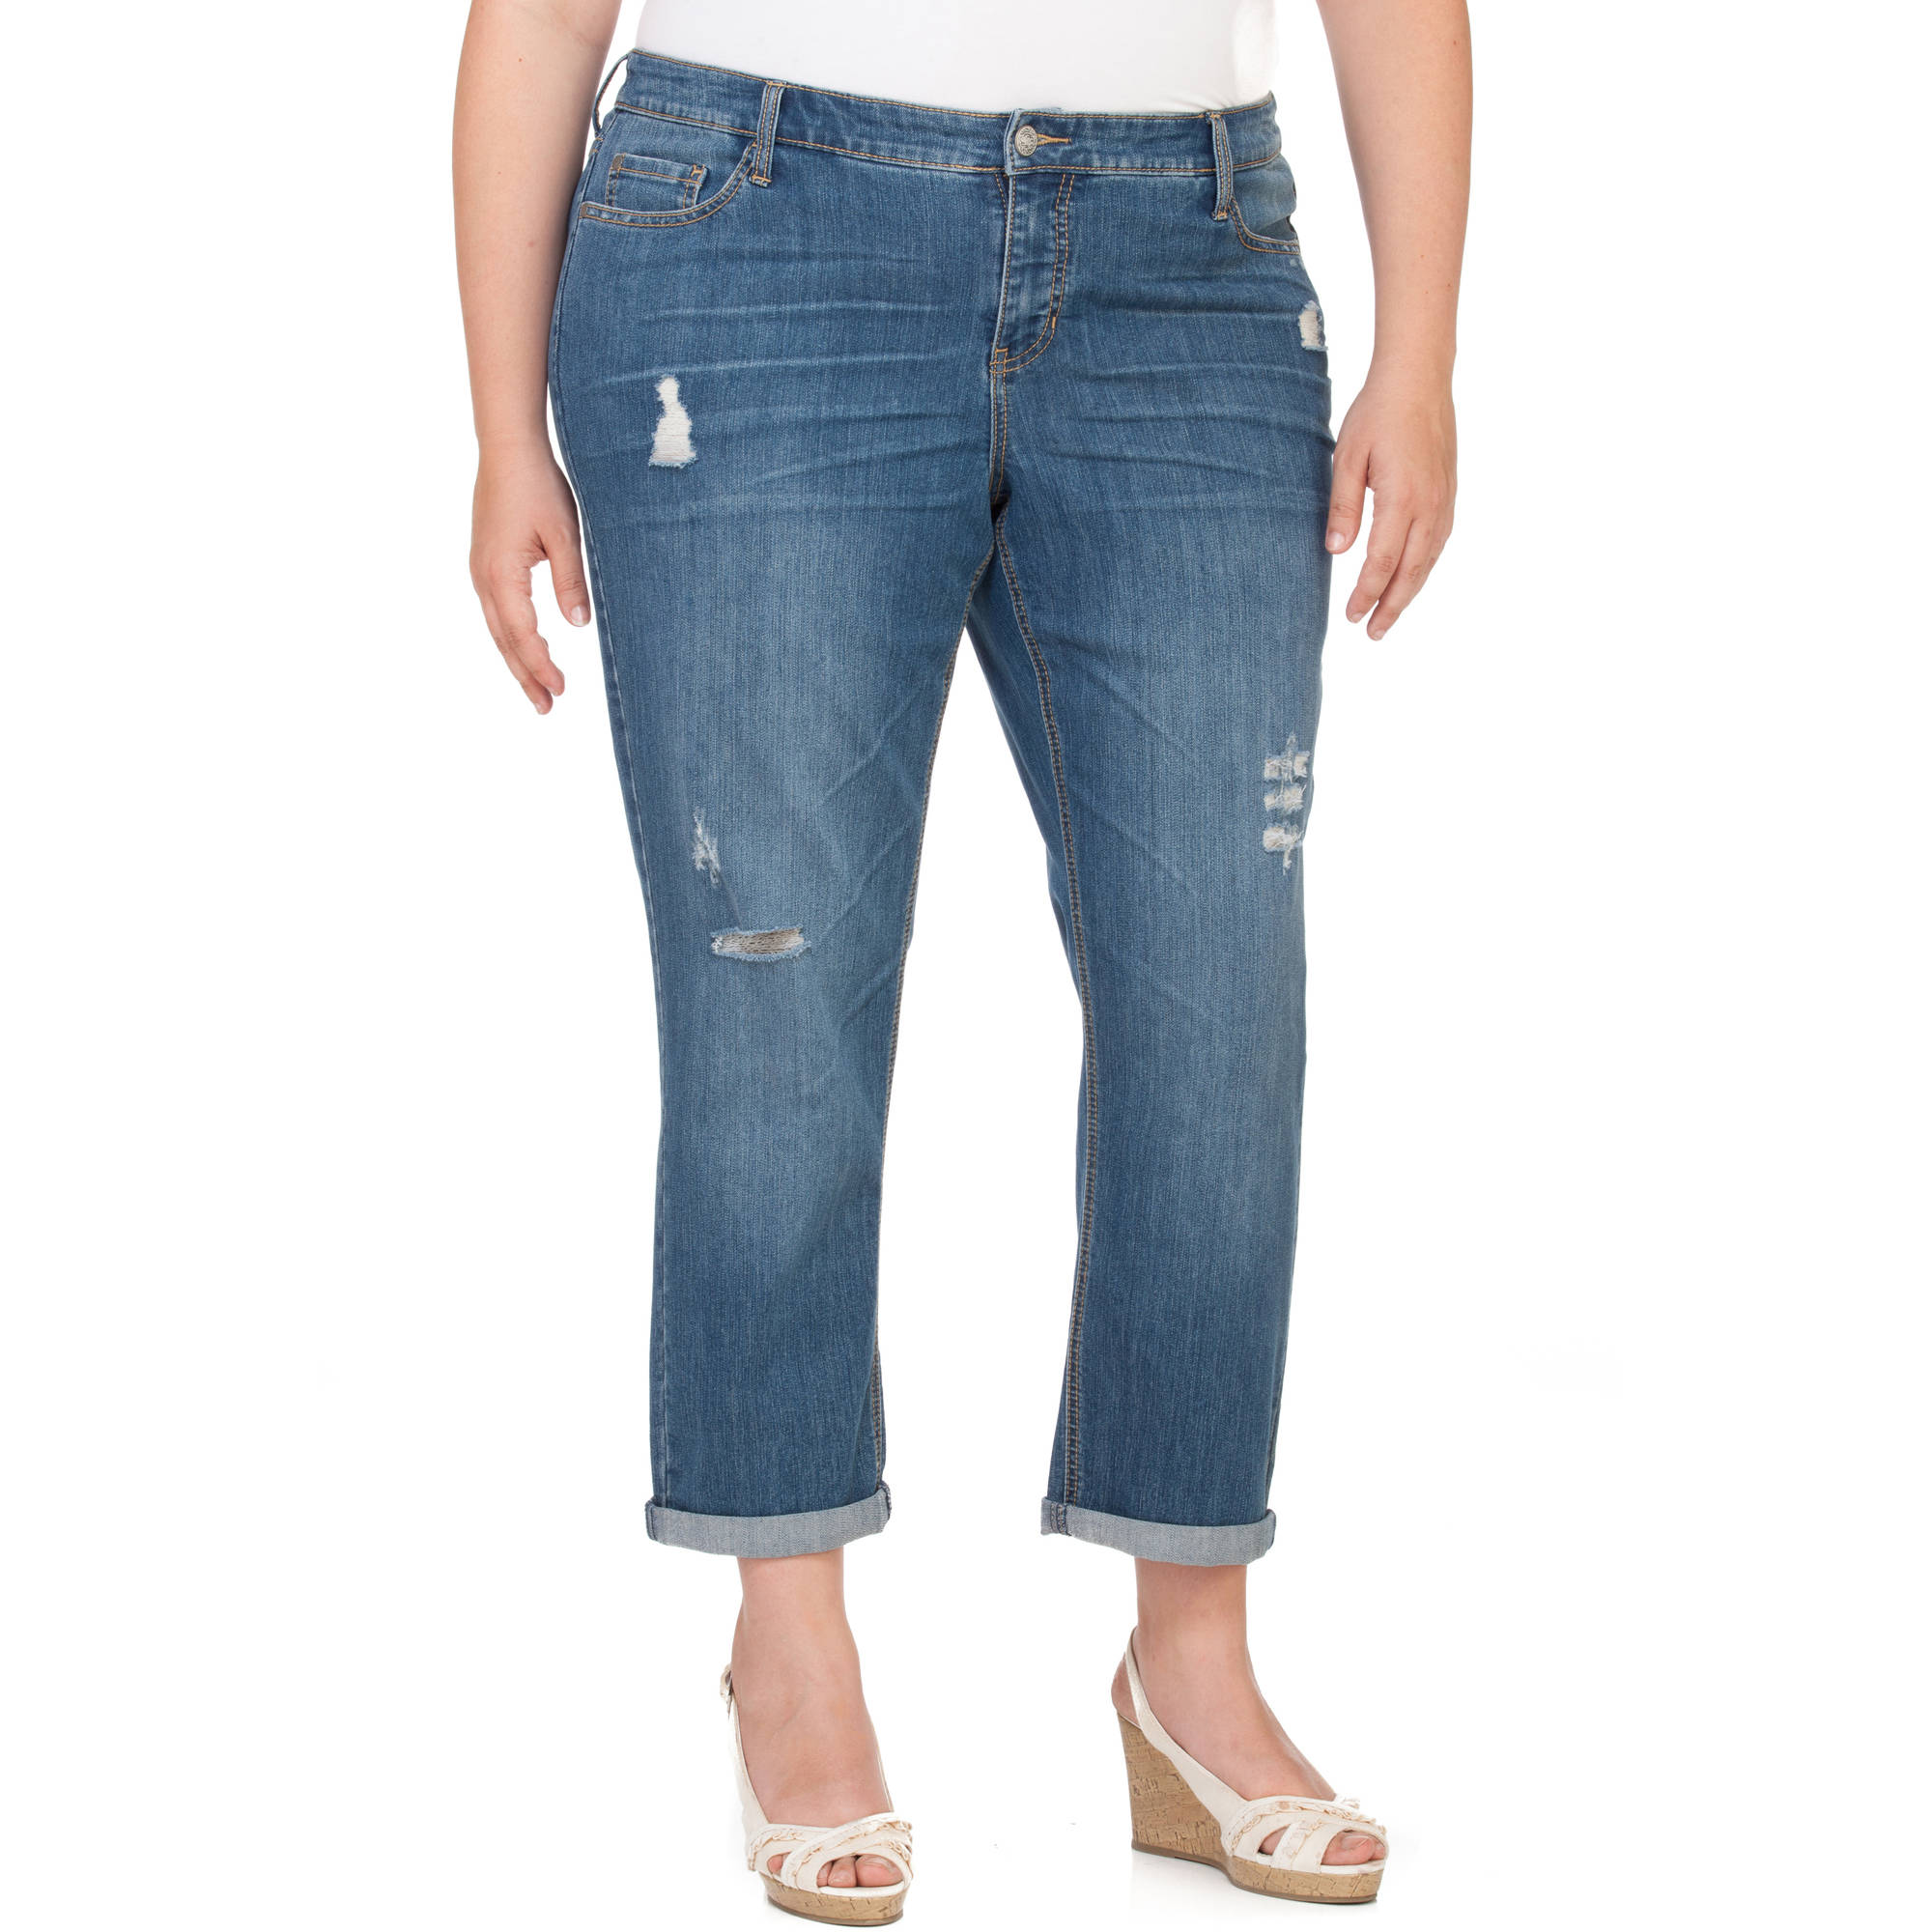 Faded Glory Women's Plus-Size Distressed Boyfriend Jeans - Walmart.com